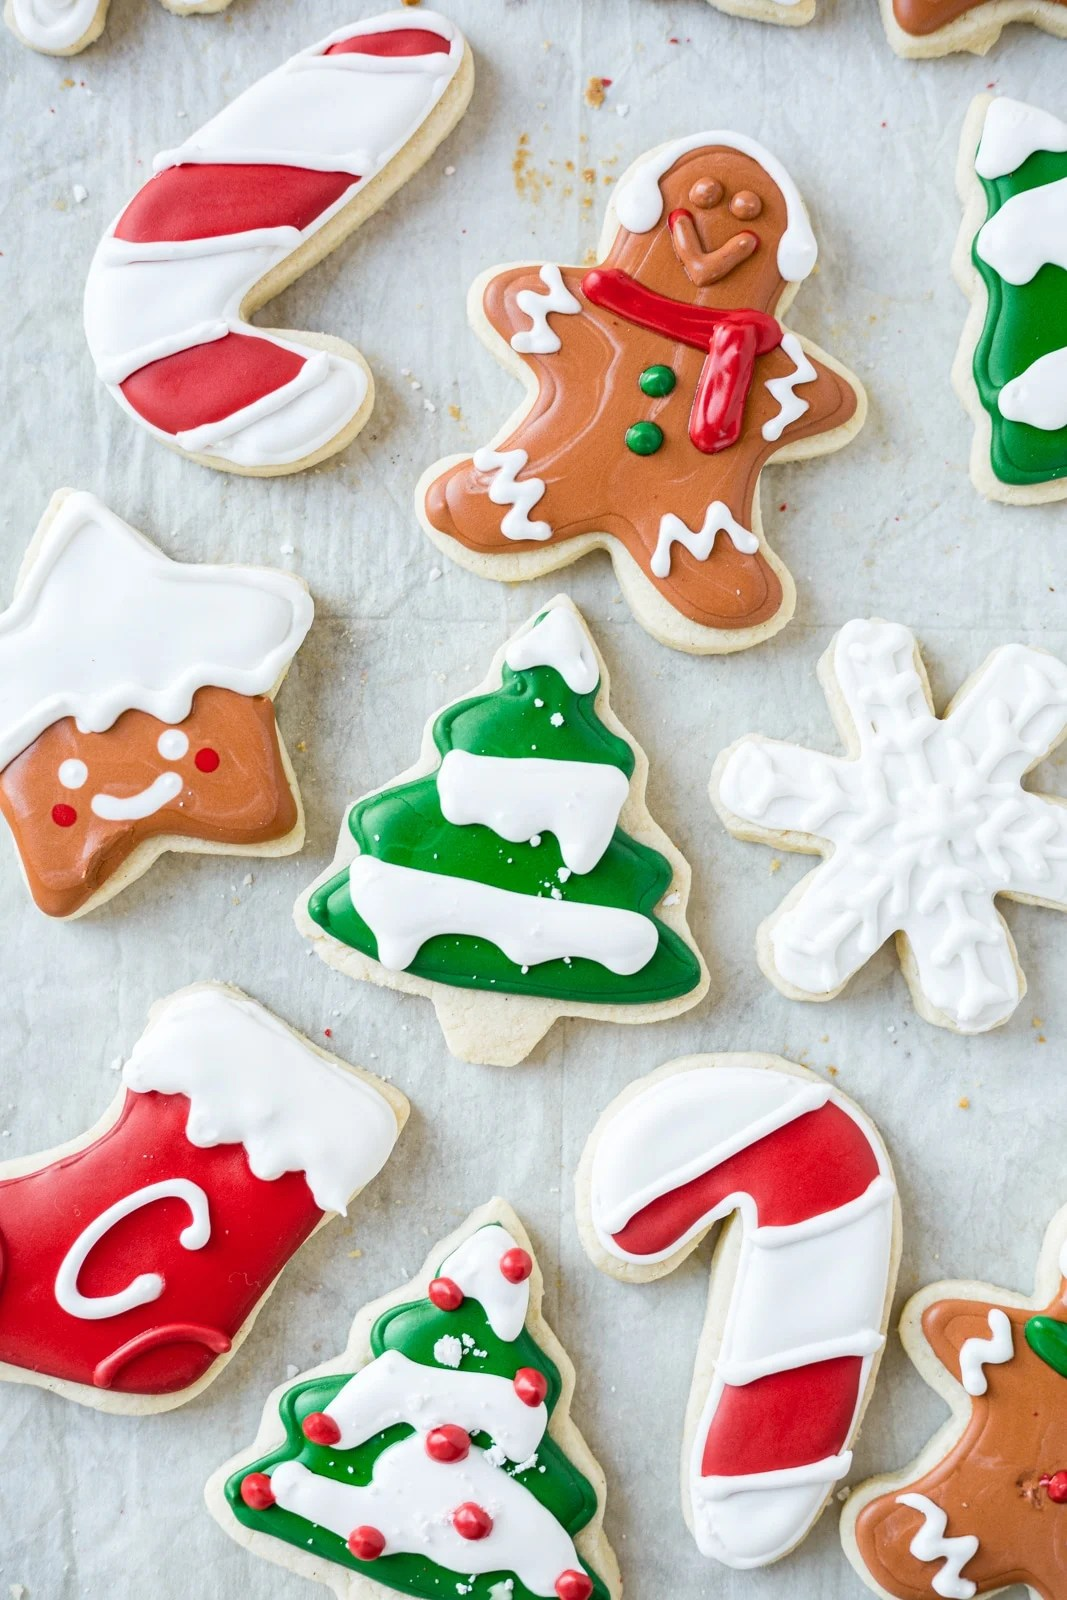 gluten free sugar cookies iced in the shape of trees, gingerbread men and stars with royal icing